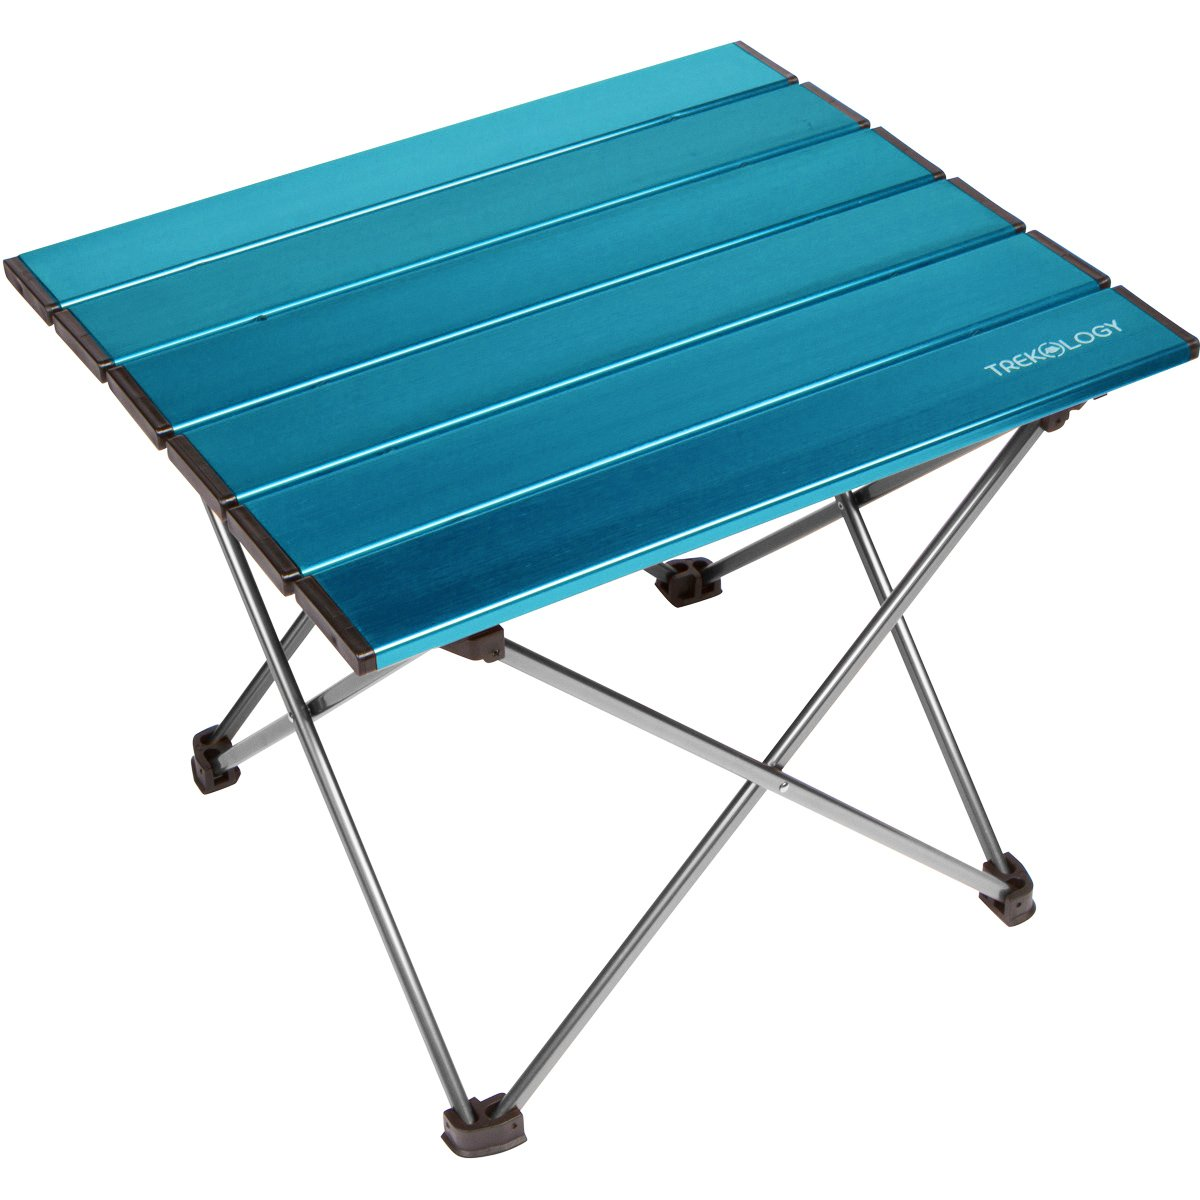 How to choose folding tables and picnic chairs